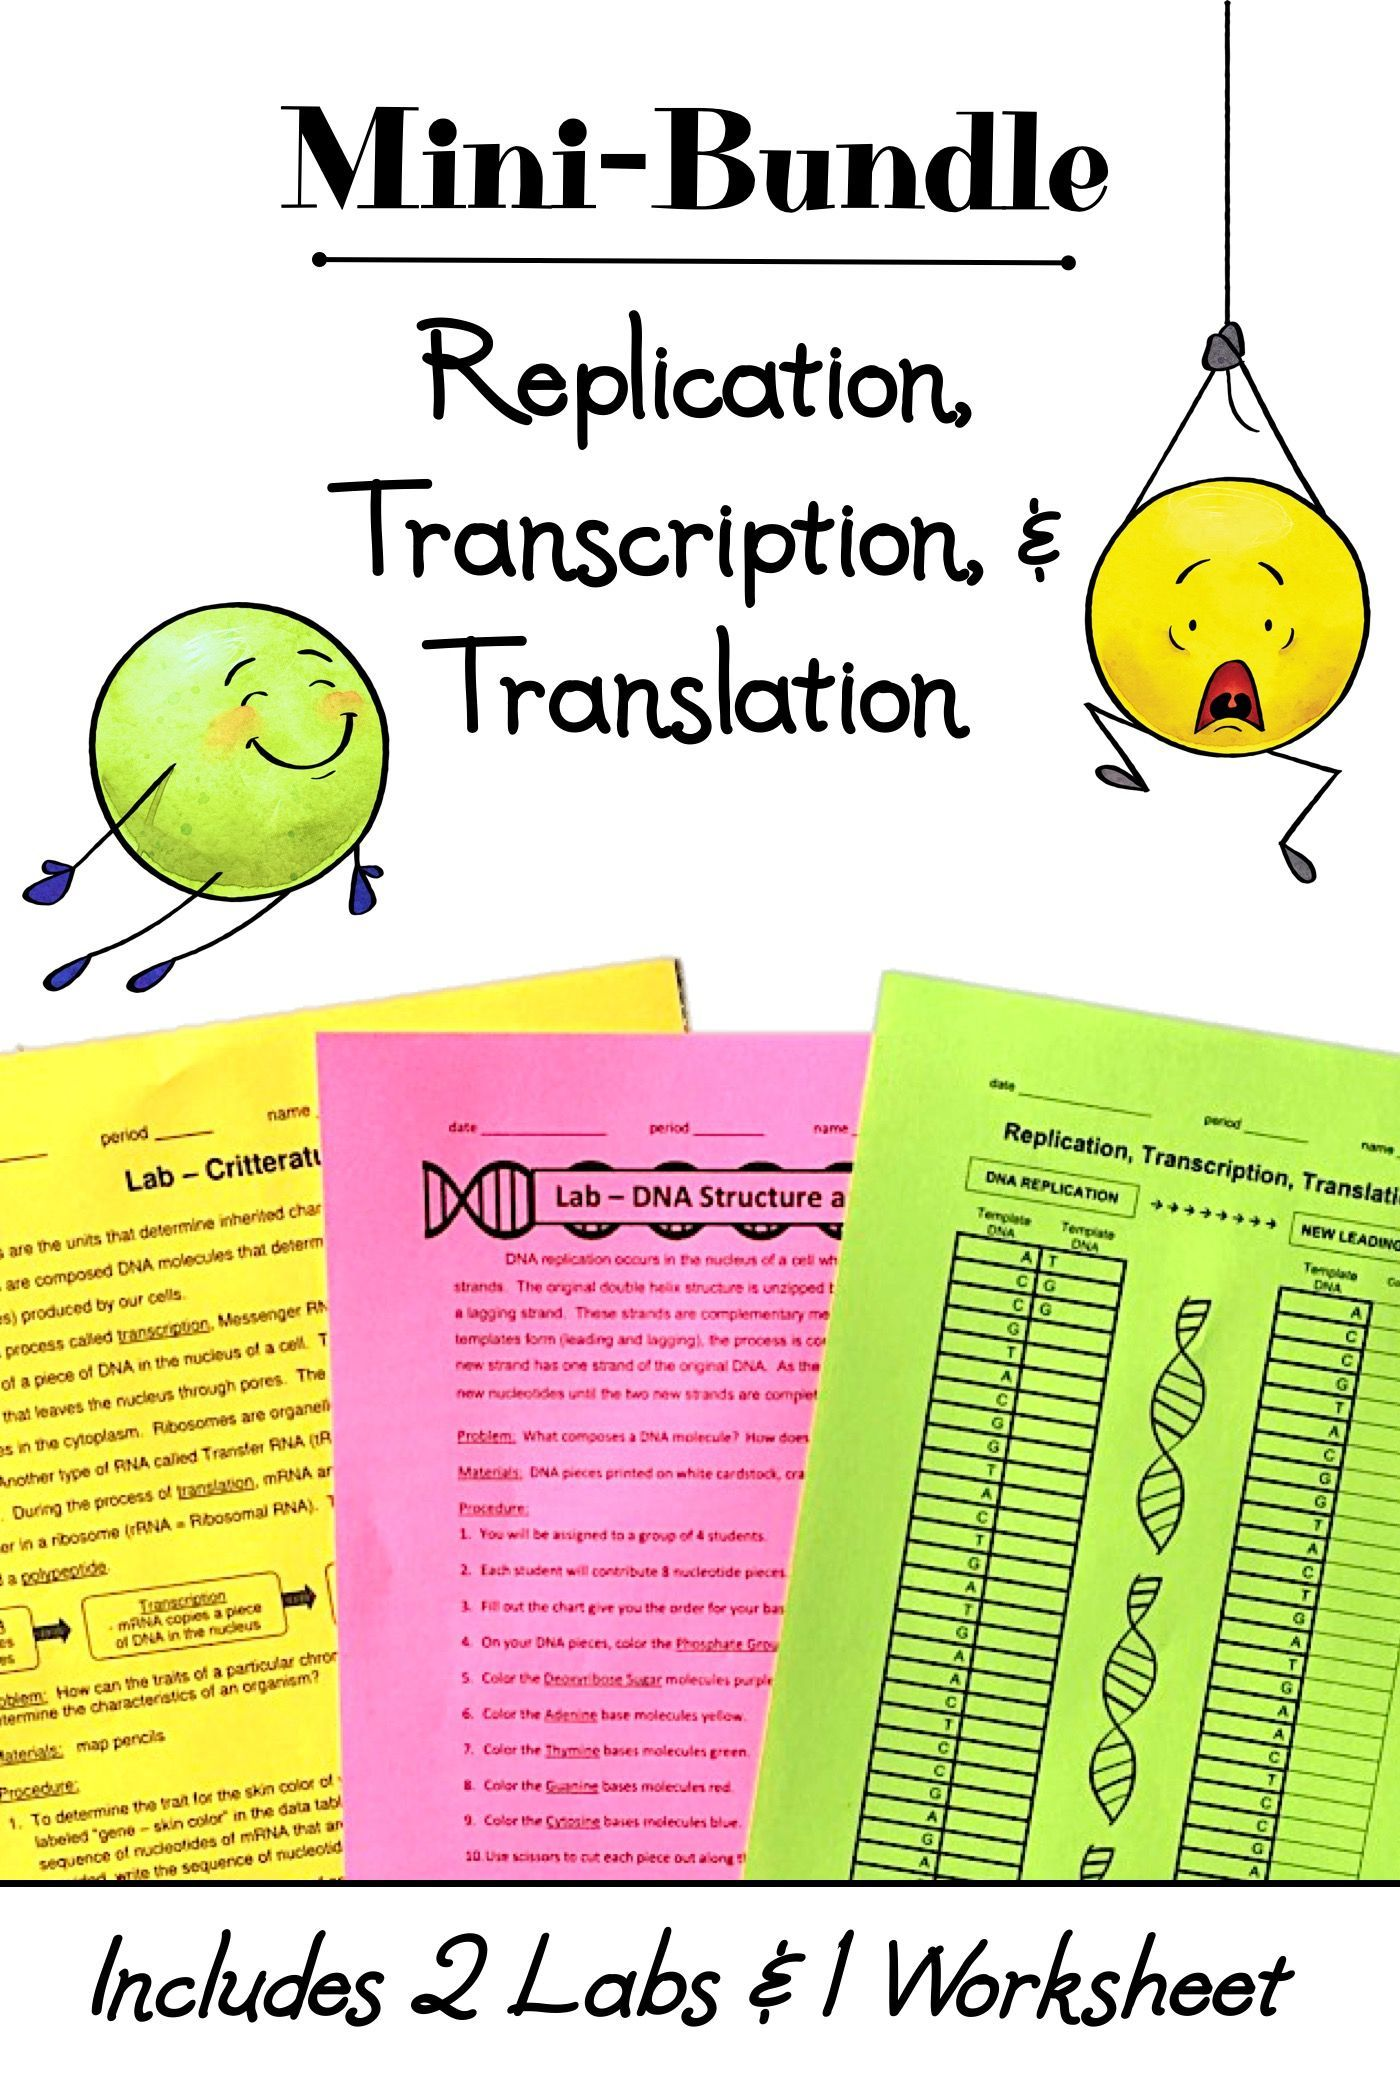 Replication Transcription And Translation Mini Bundle Activities Worksheet Transcription And Translation Dna Transcription And Translation Dna Transcription